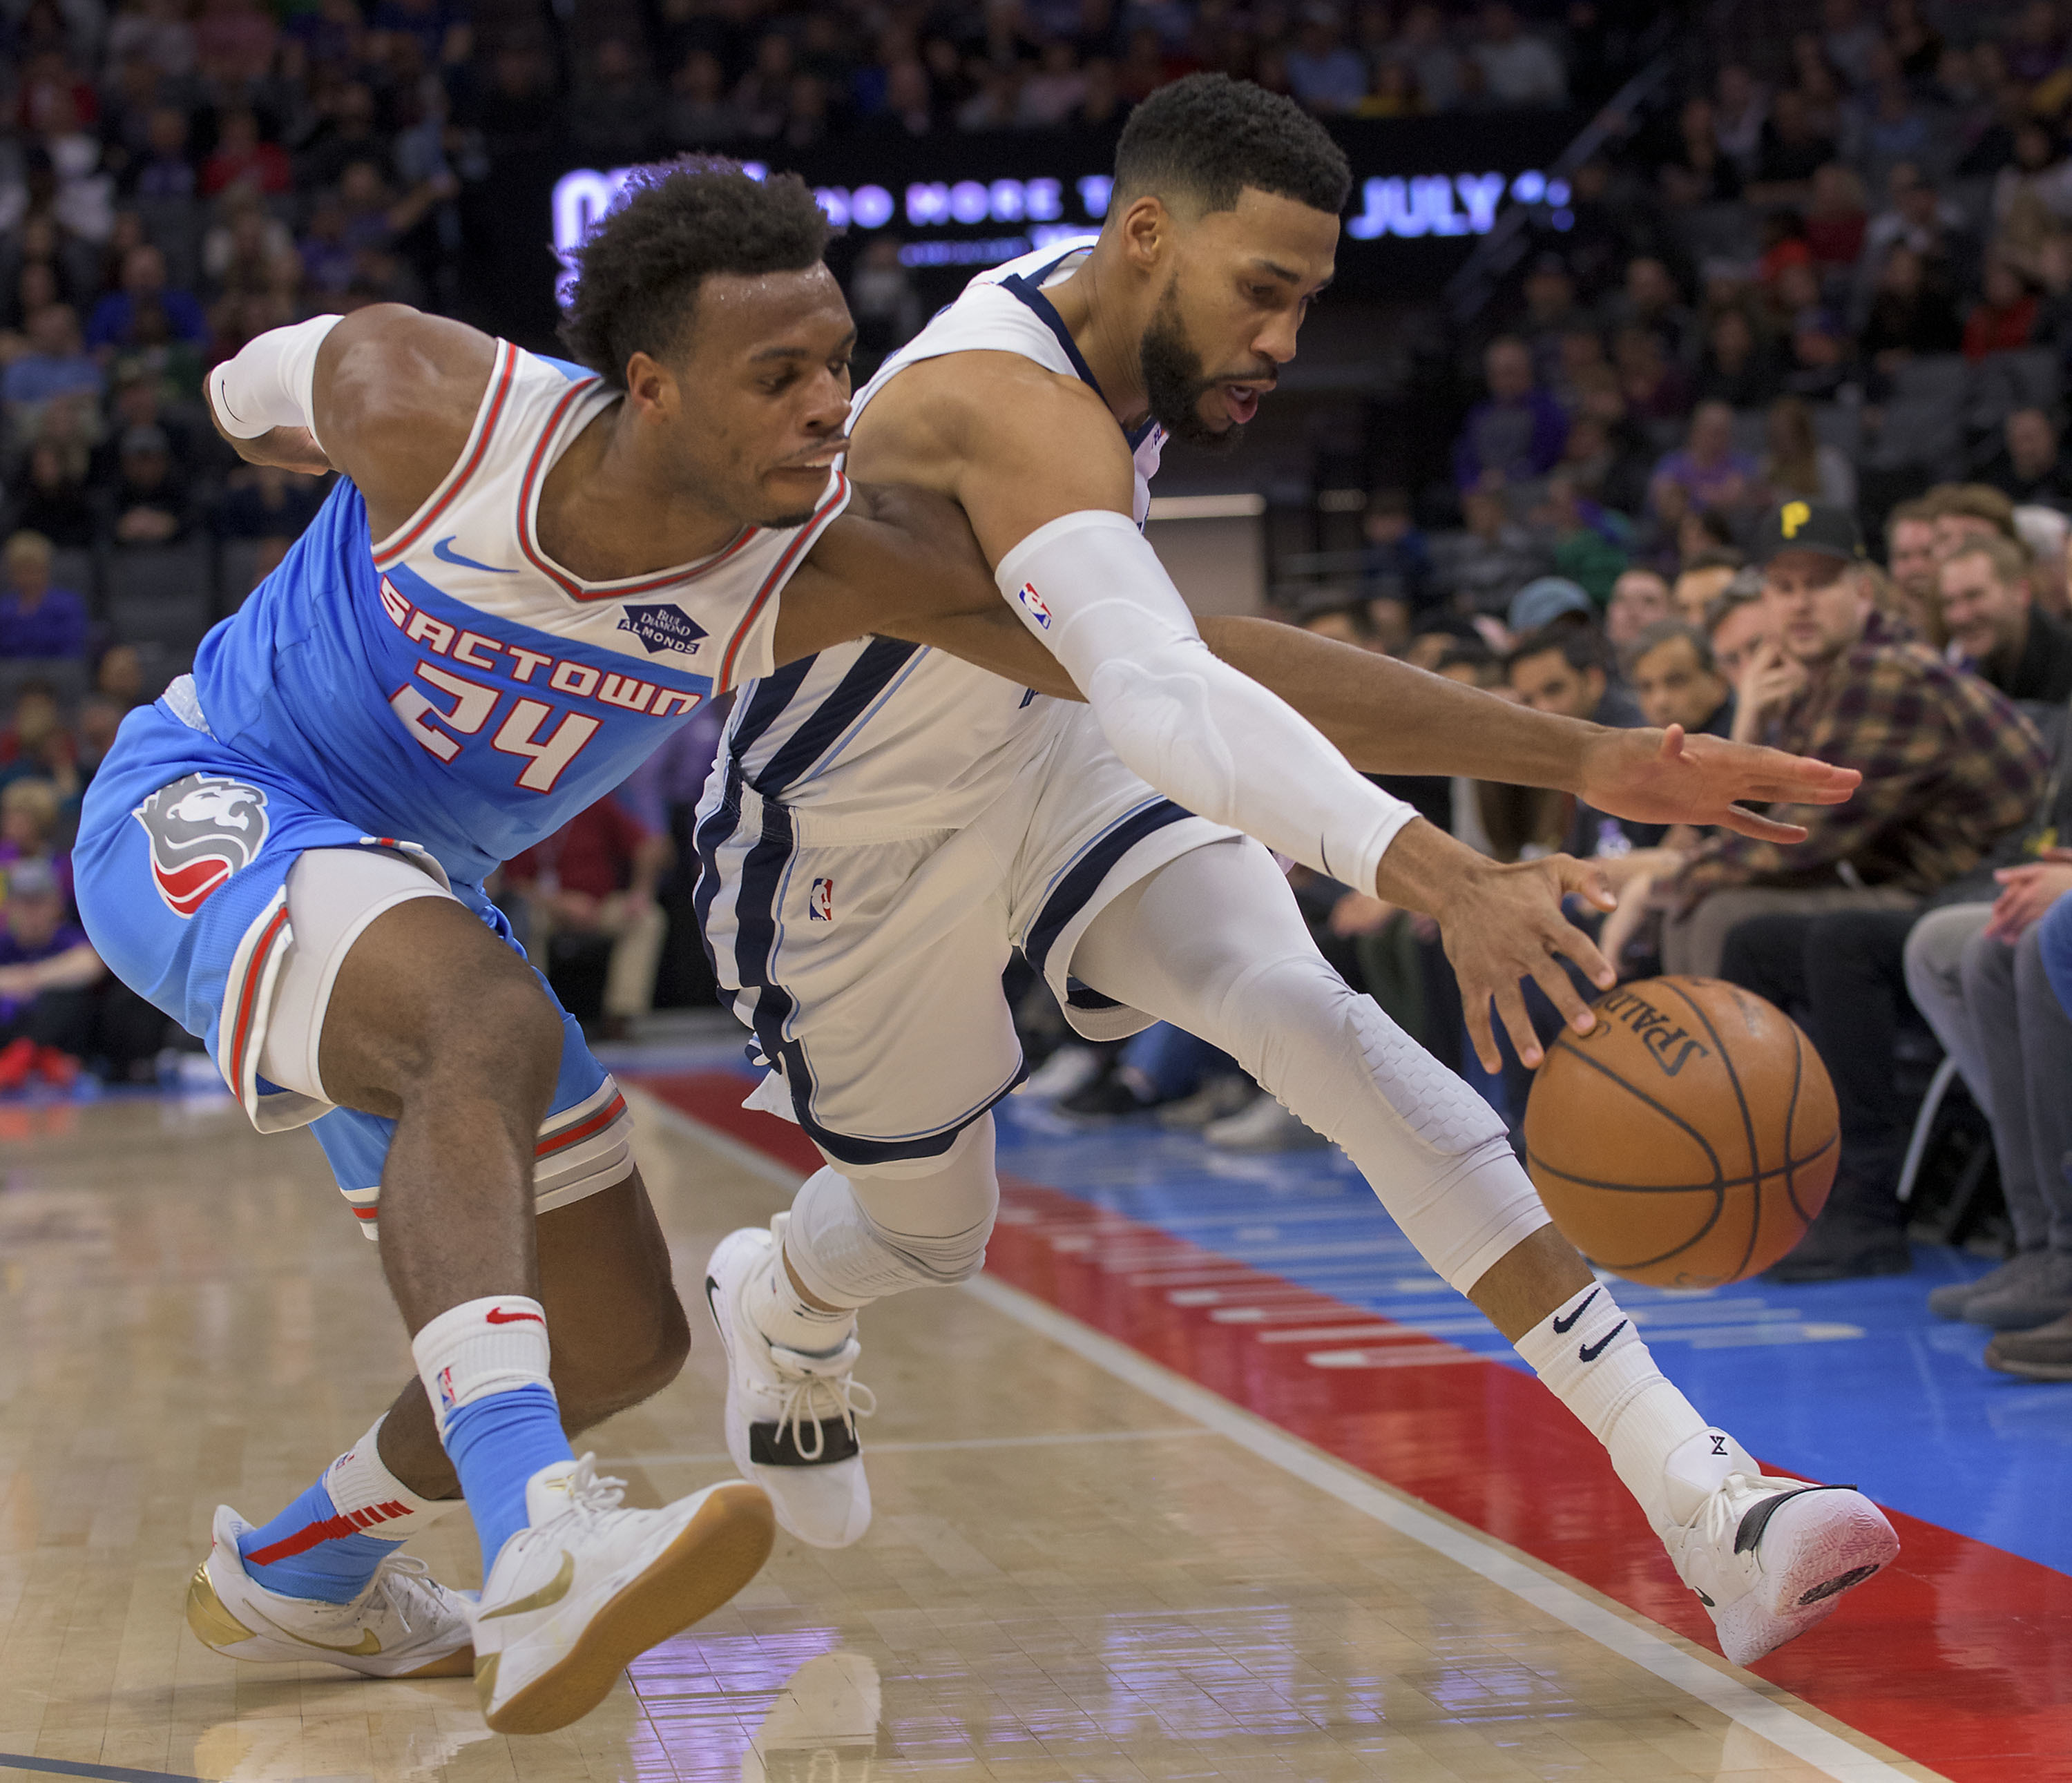 Hield scores 28 points to push Kings past Grizzlies 102-99